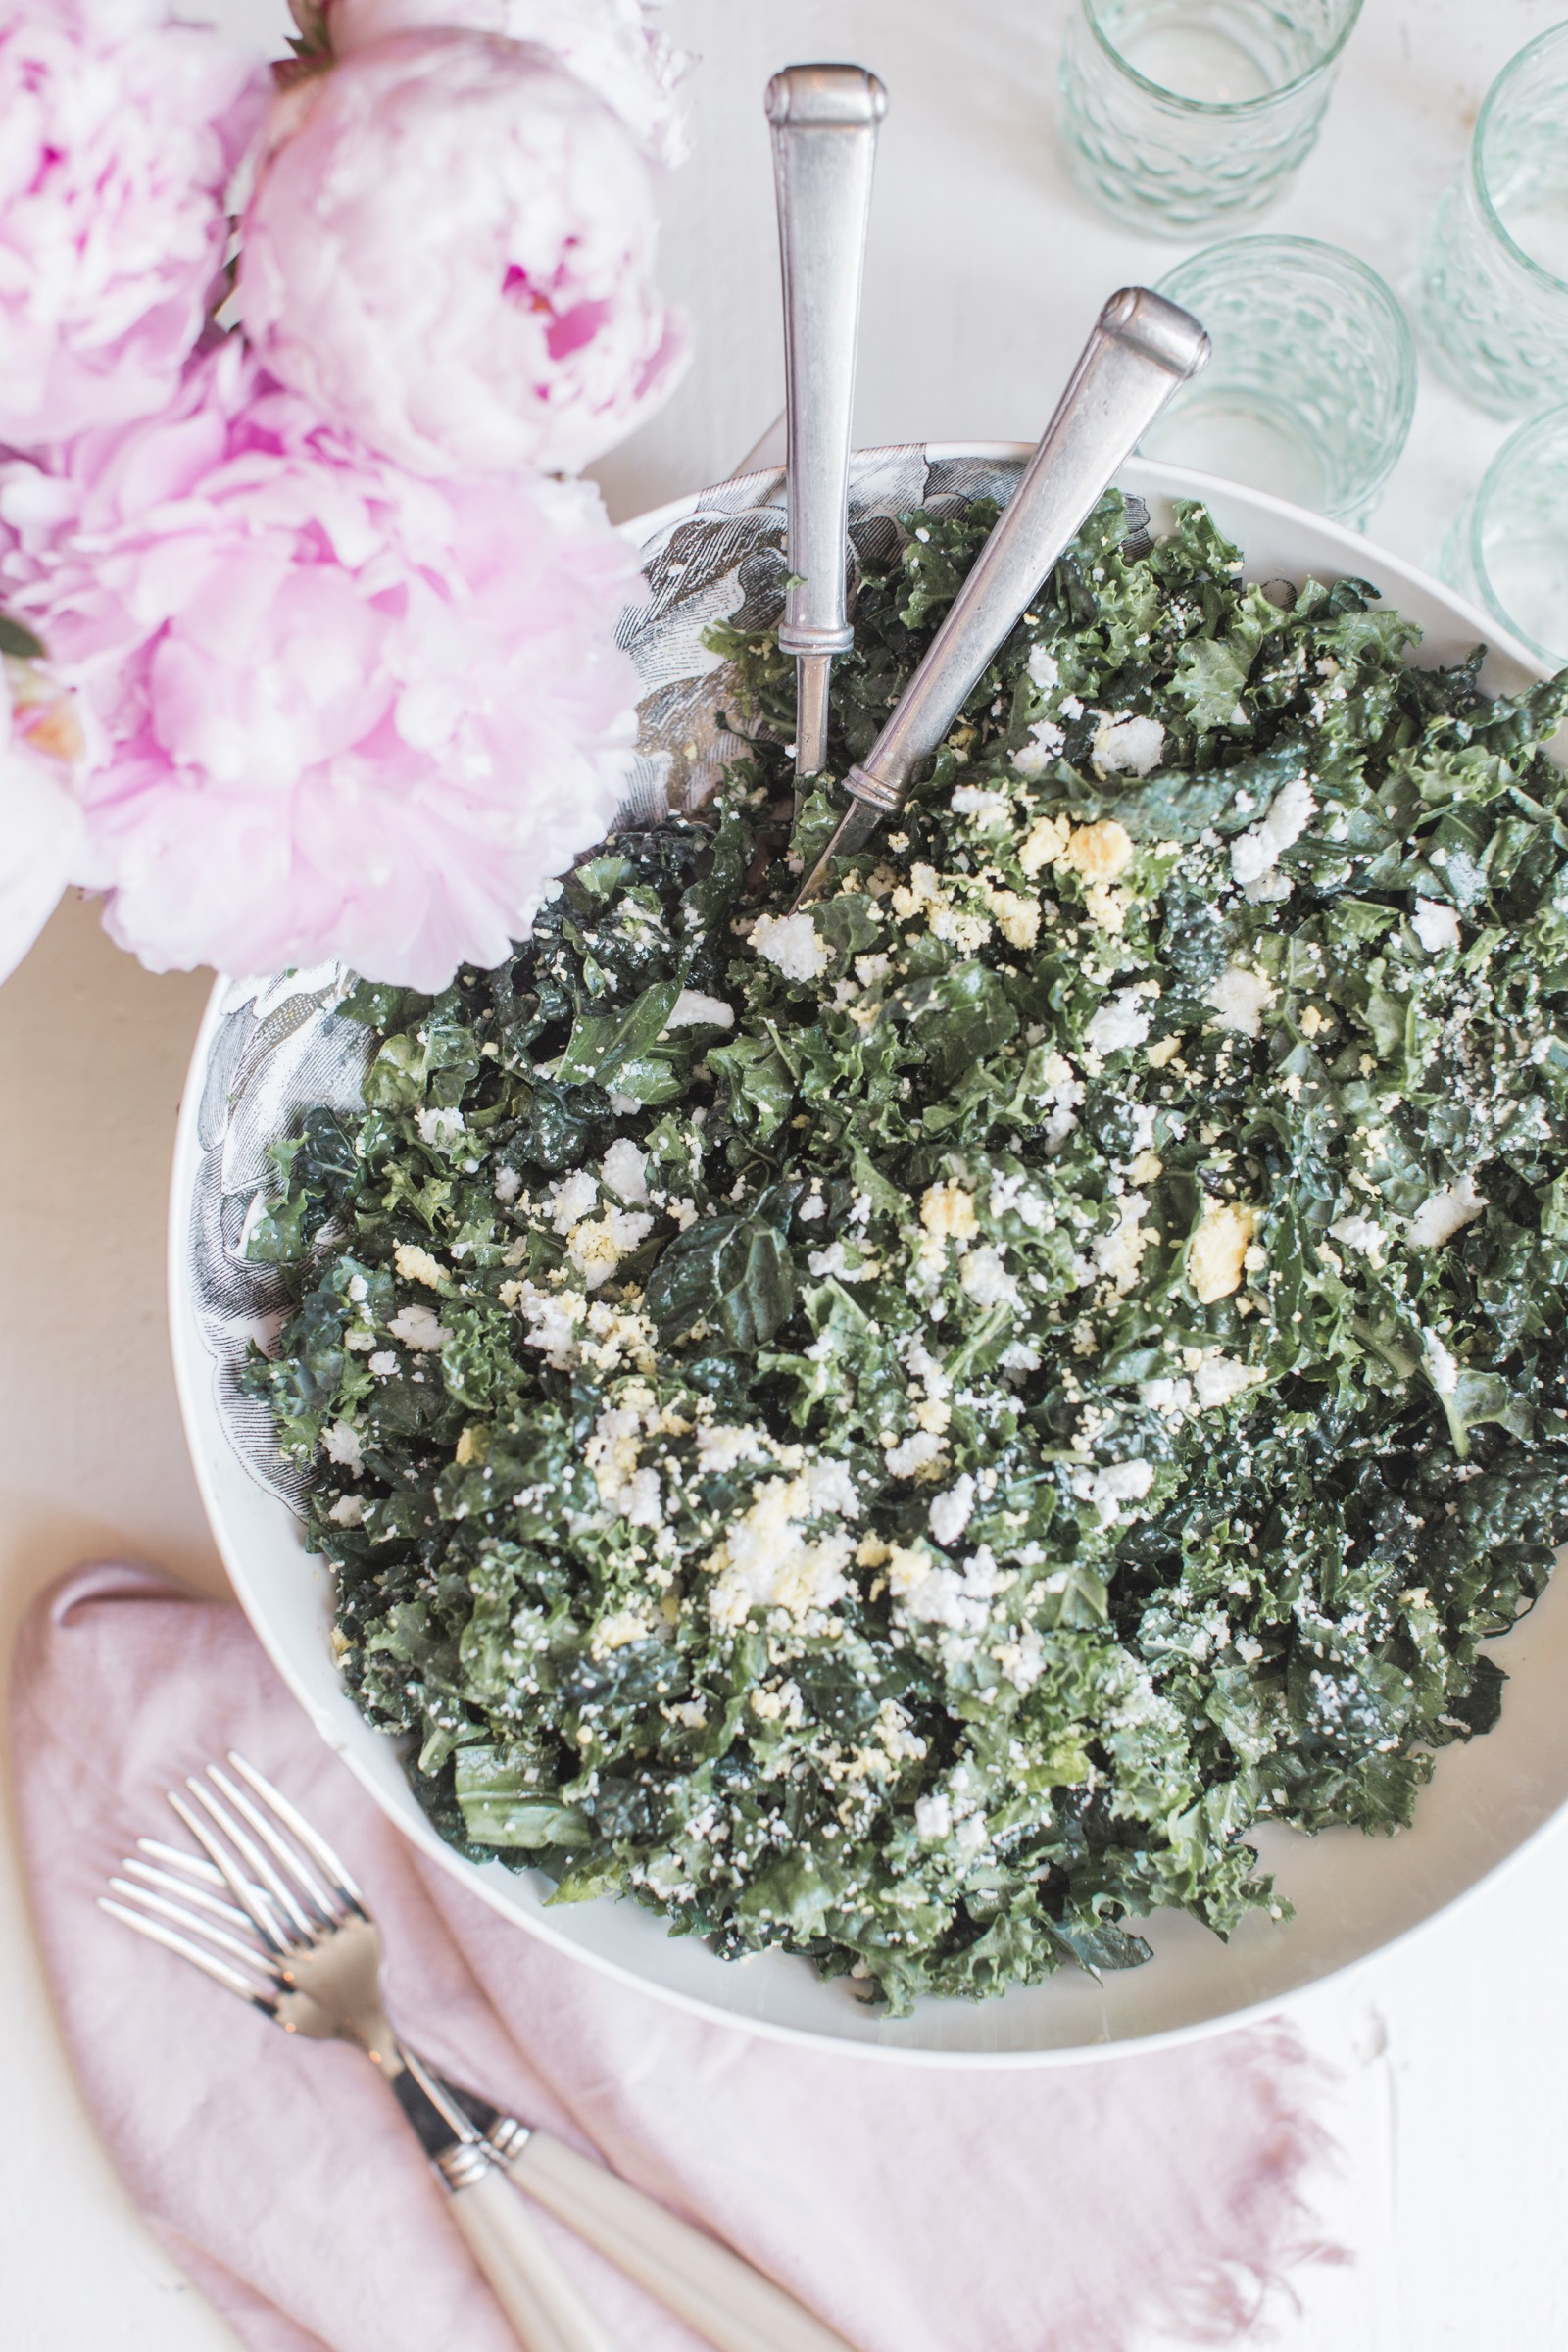 One Kings Lane Recipe Kale Caesar Slaw